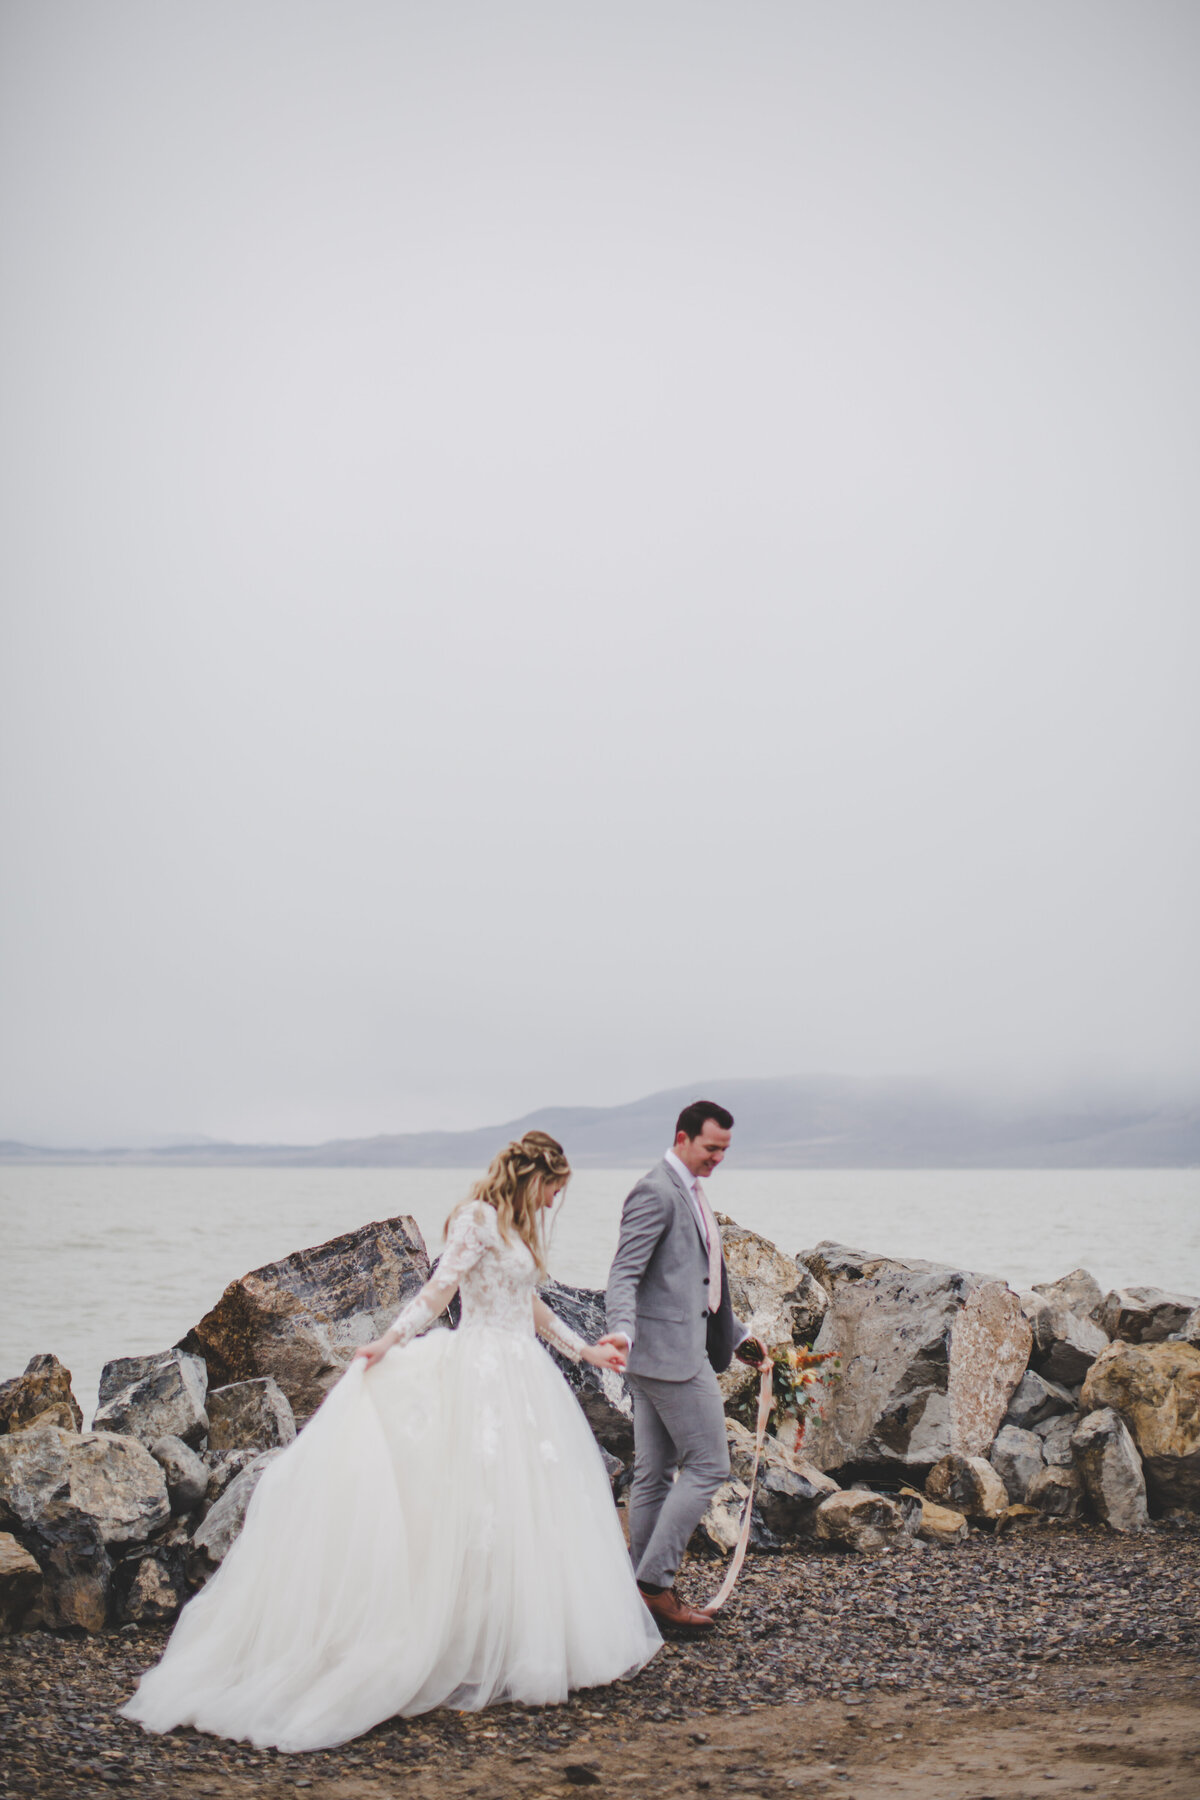 Breea & Jake - Utah Styled Shoot (164 of 304)